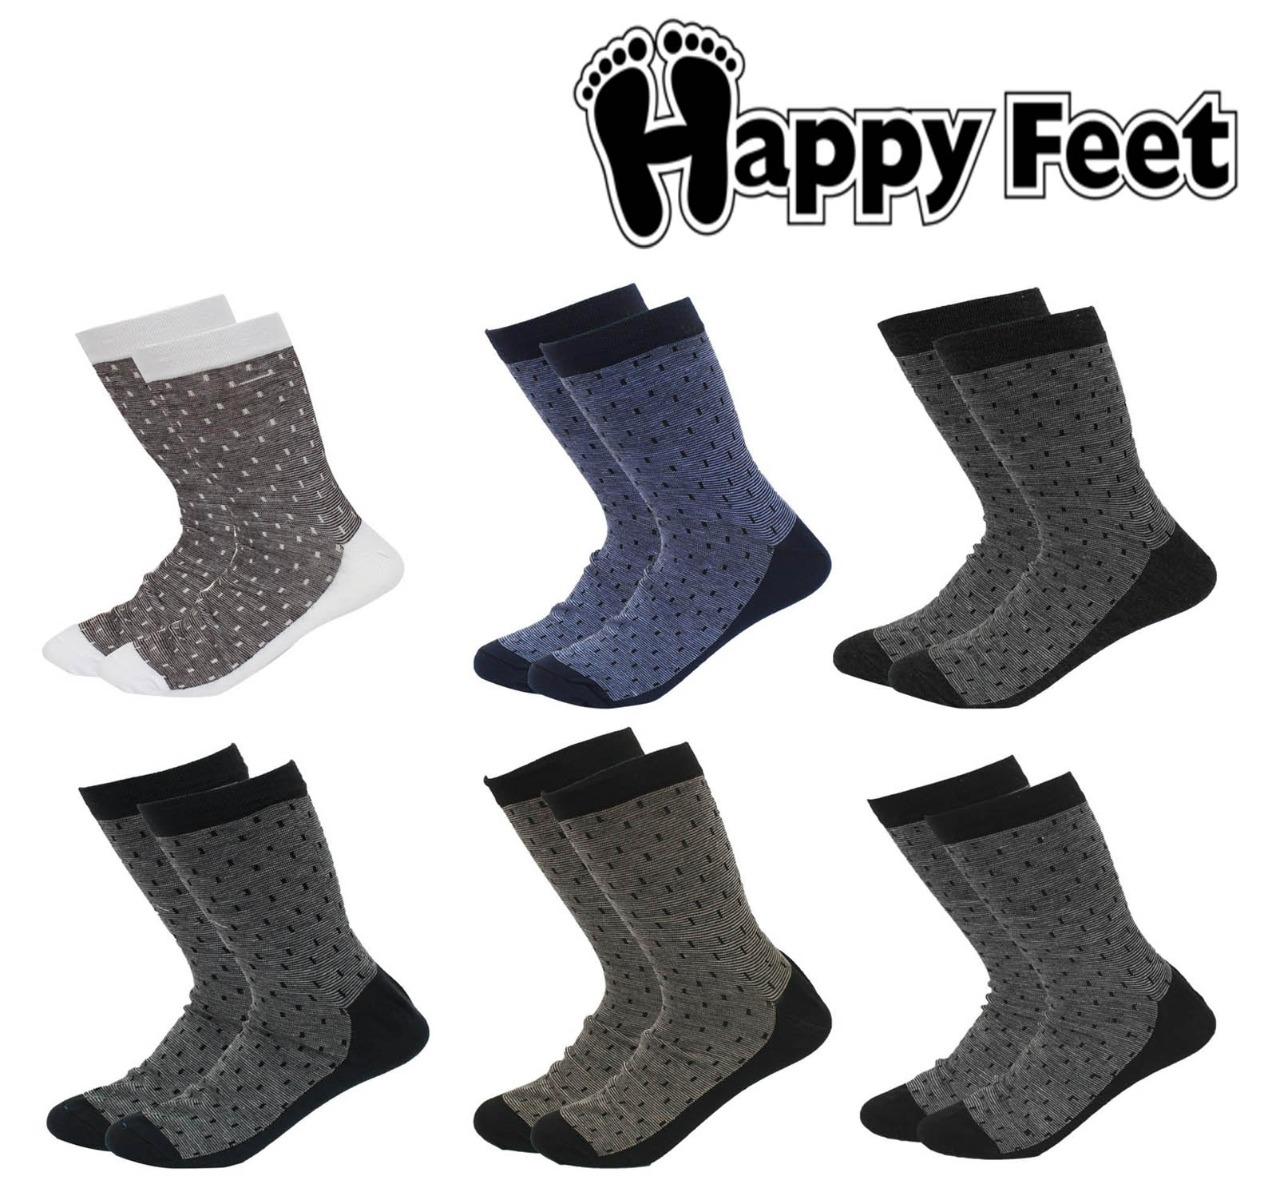 Happy Feet Pack of 6 Pairs of Pure Cotton Antibacterial Socks for Men (1038)